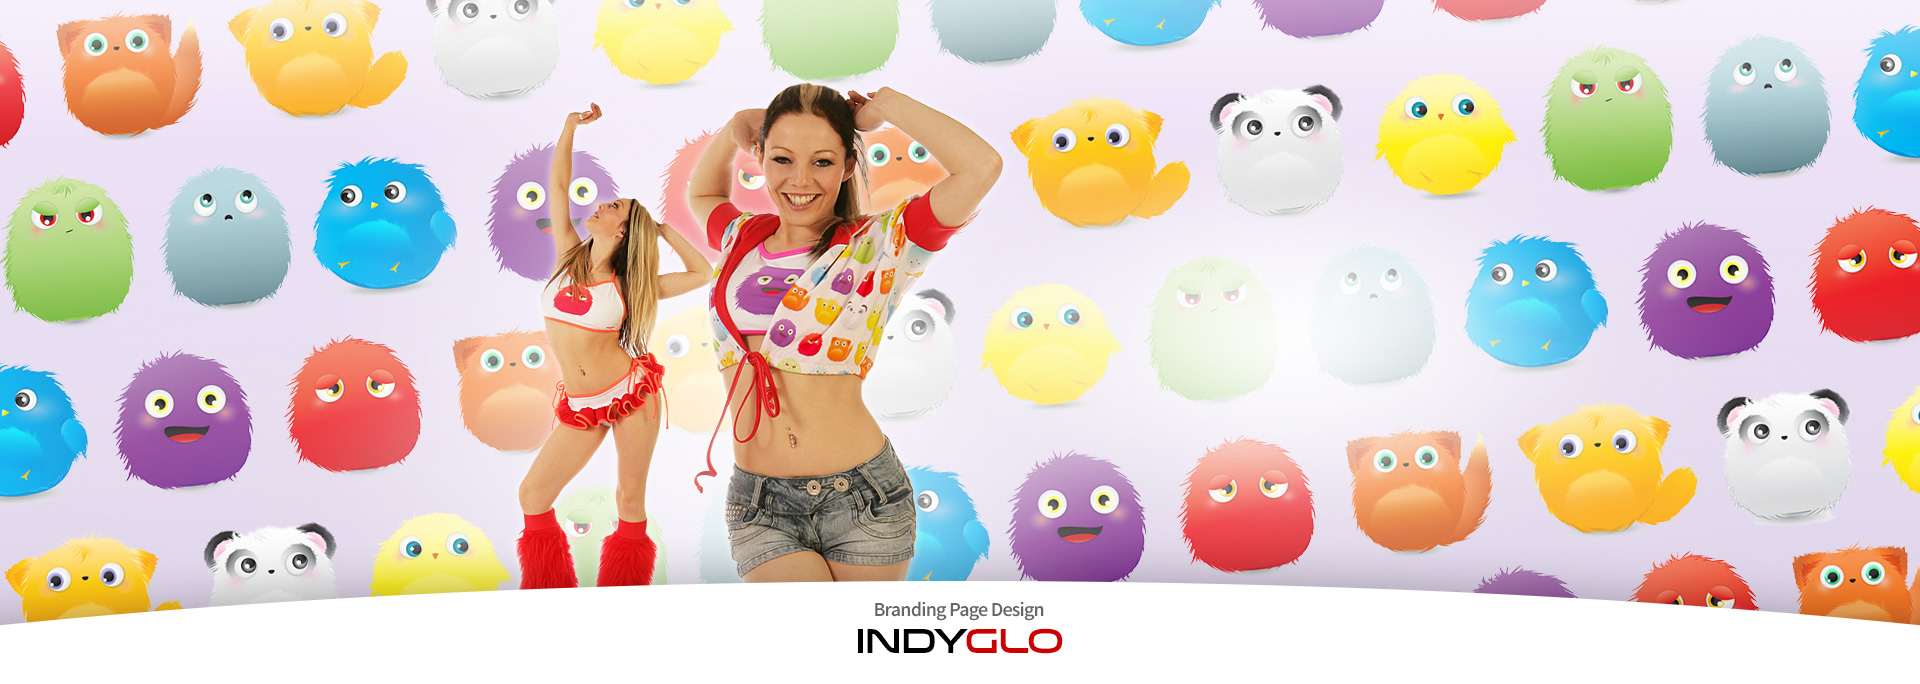 Indyglo Brand Page Backdrop - Plurries